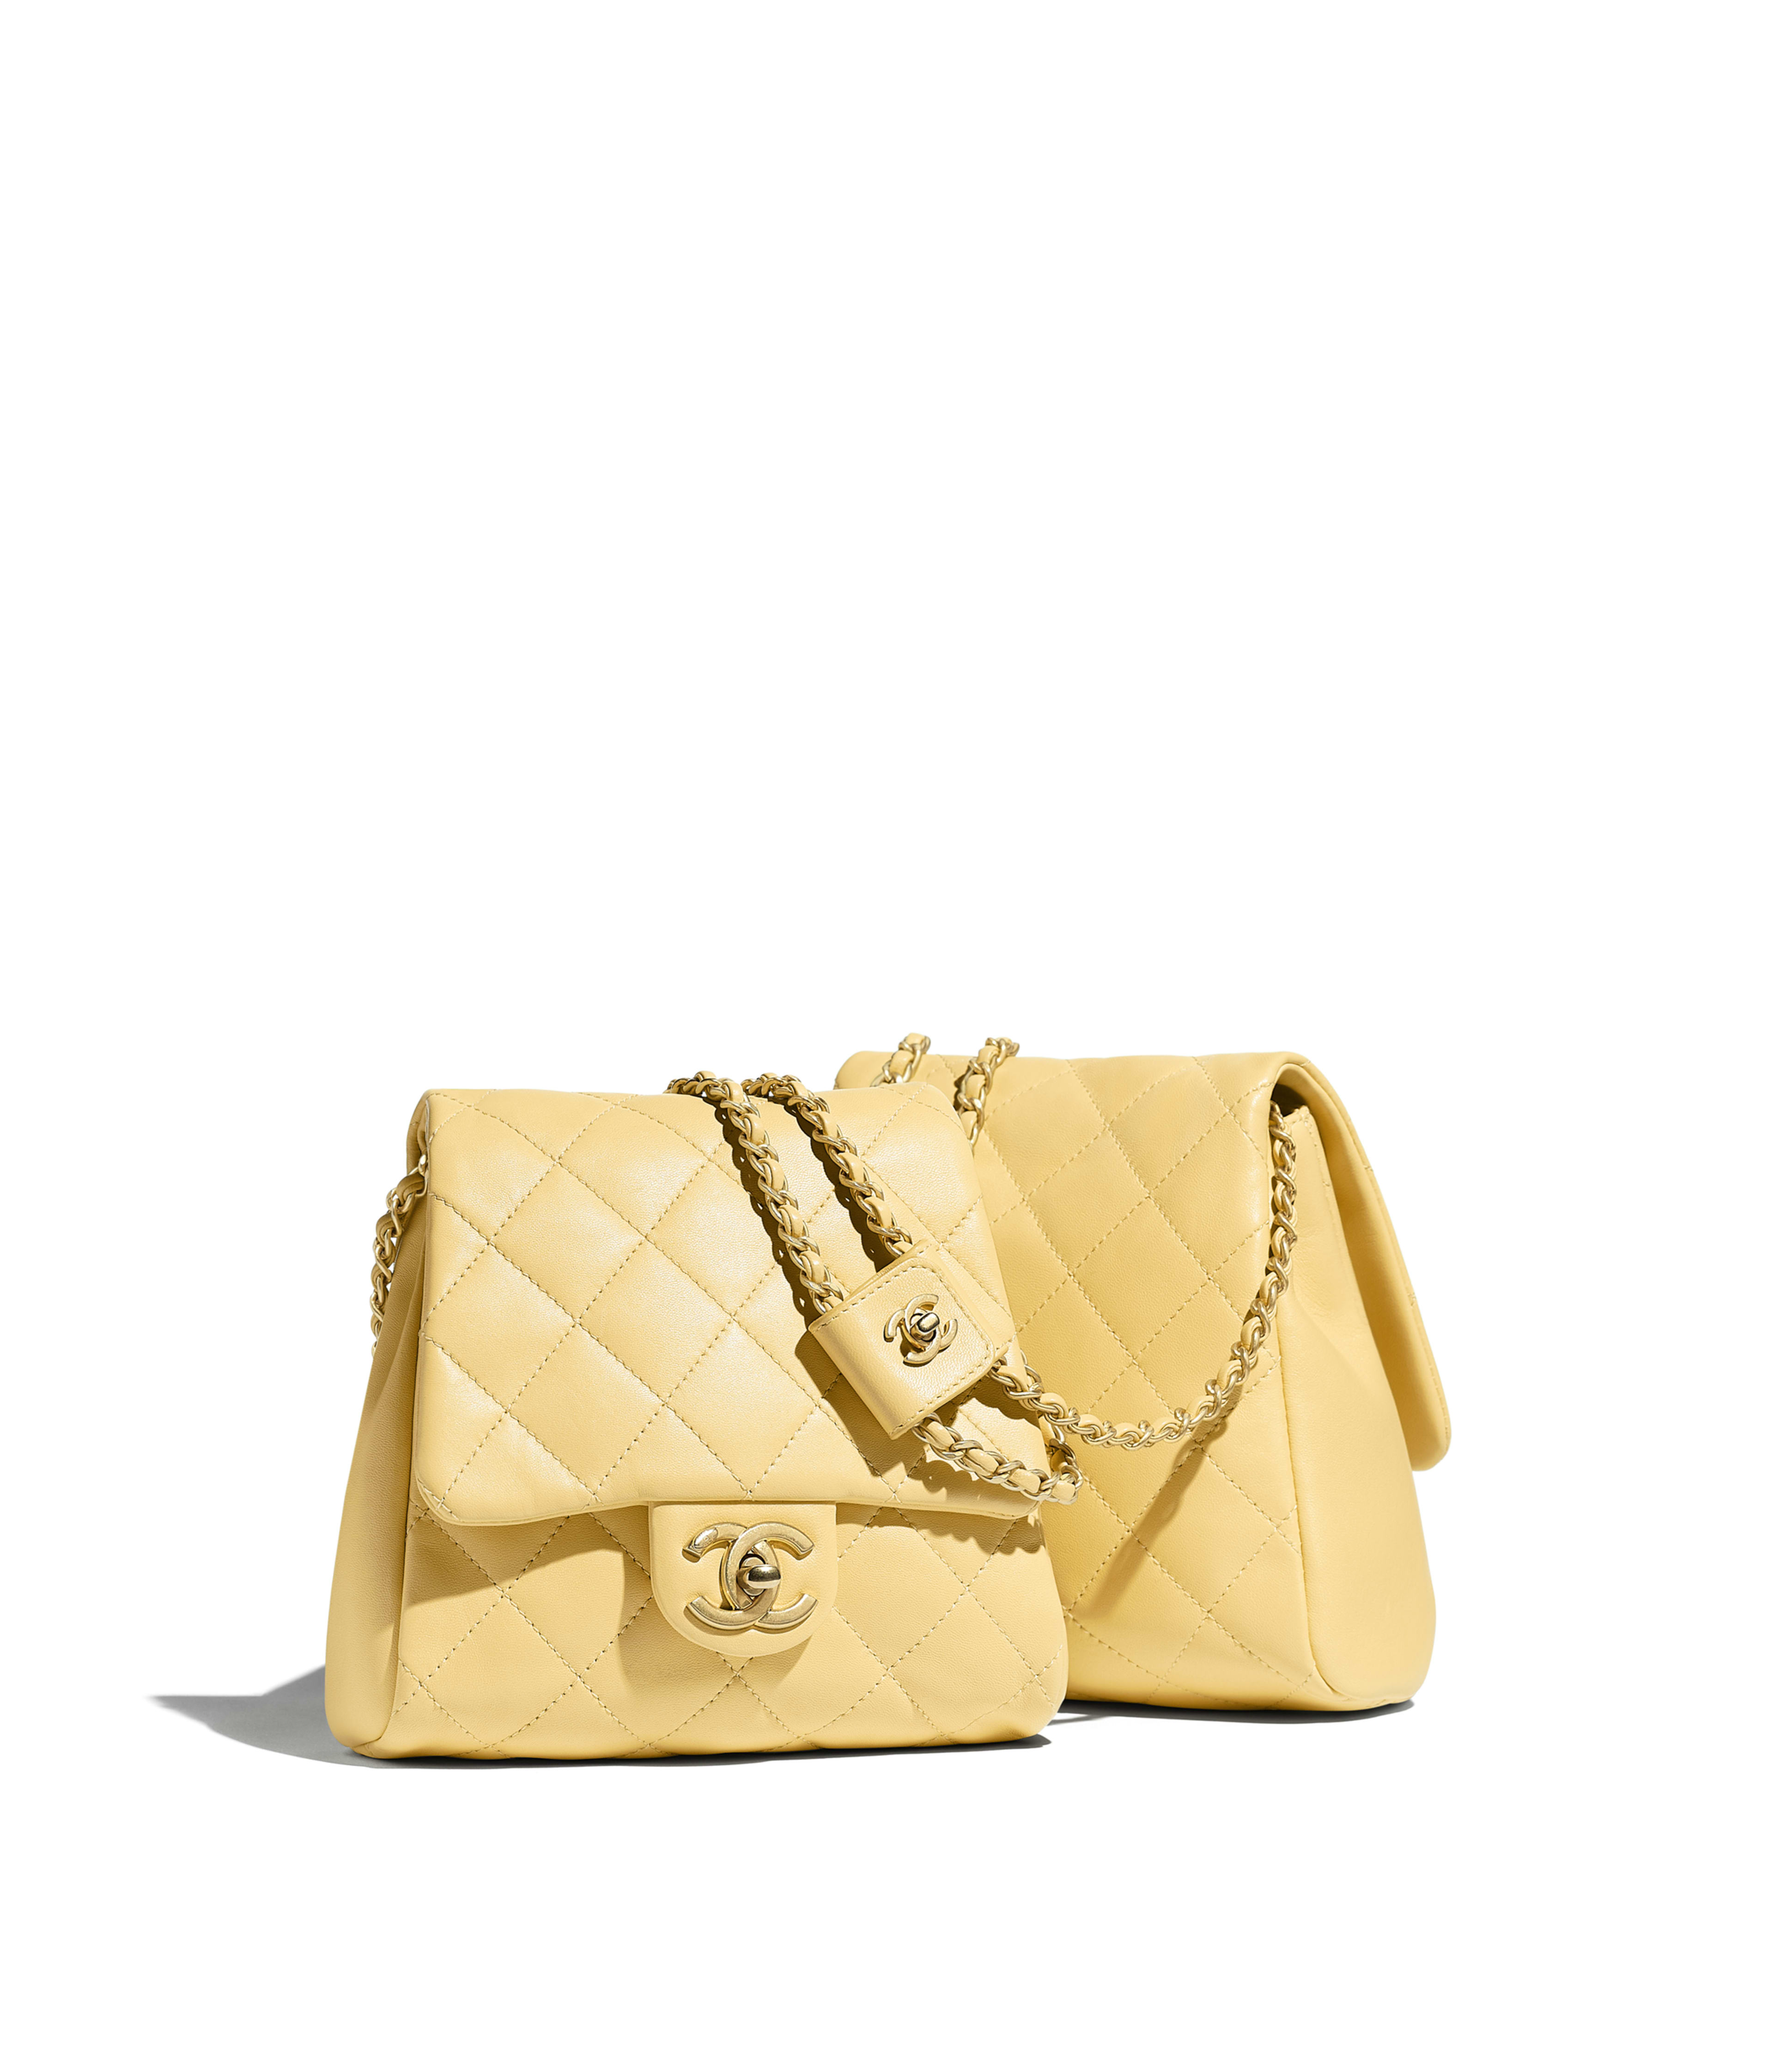 140bf92c0ccf Side-Packs Lambskin & Gold-Tone Metal, Yellow Ref. AS0614B00381N0895